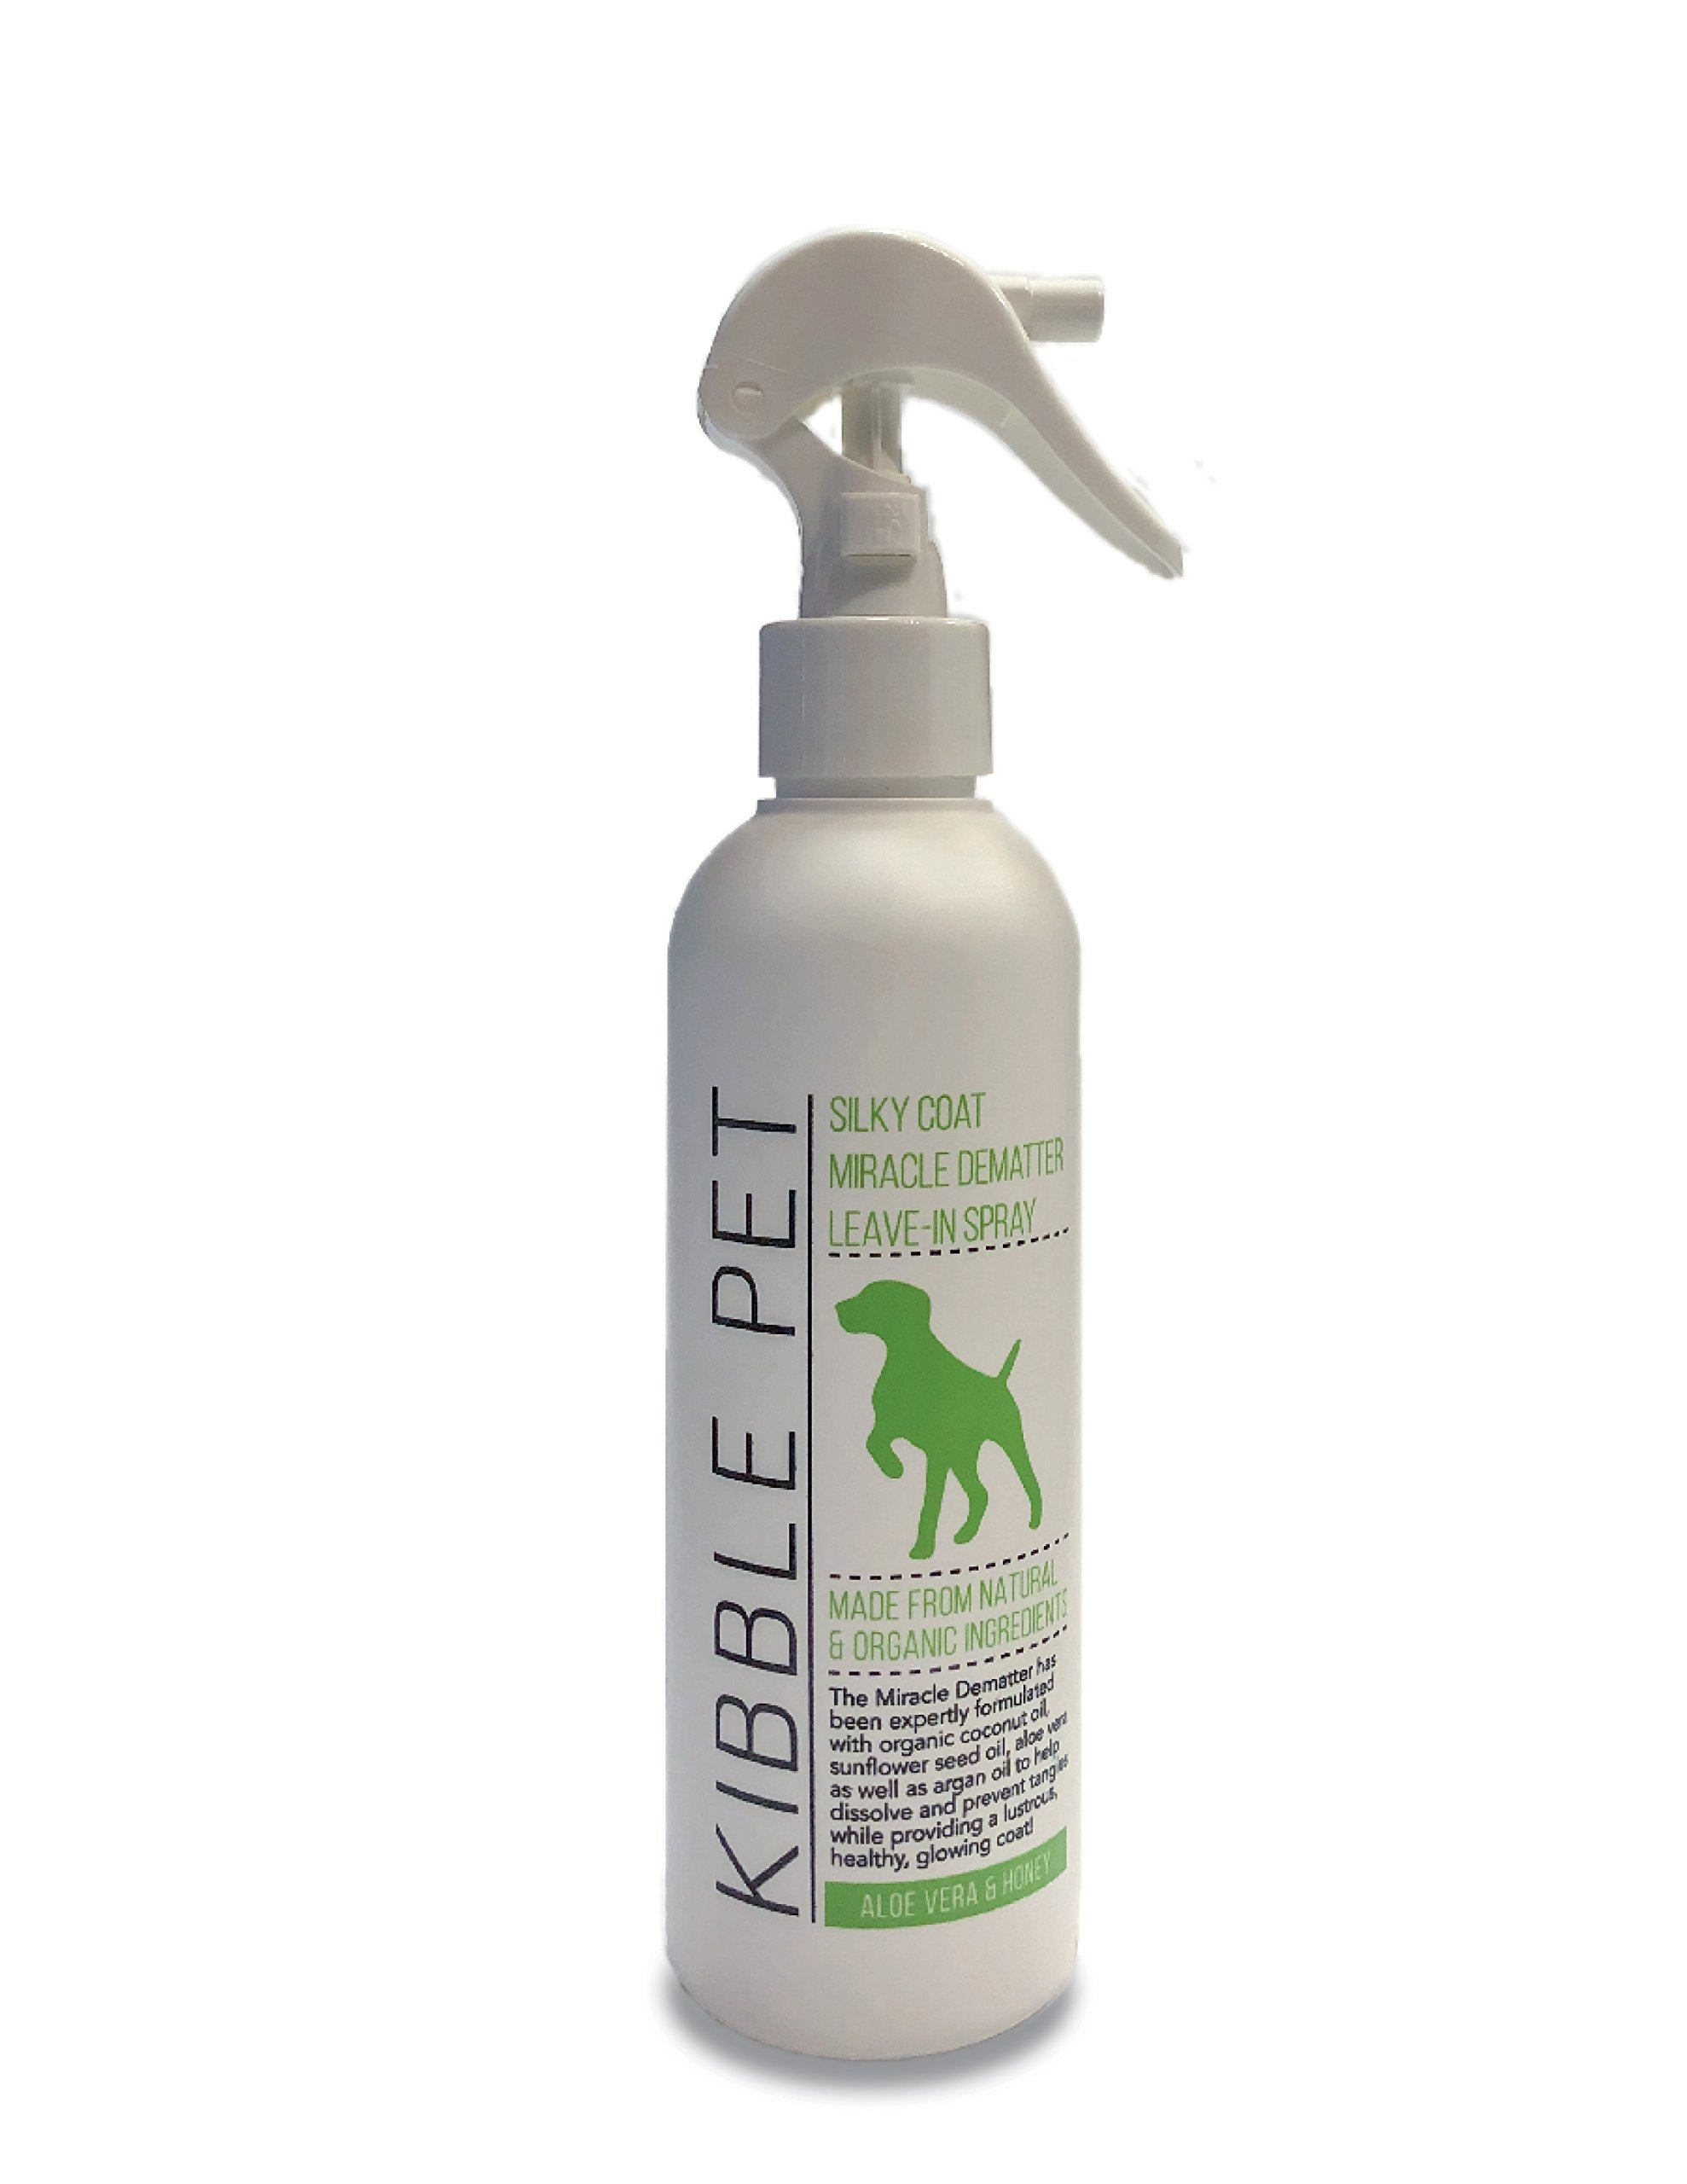 Kibble Pet Silky Coat Miracle Dematter Leave in Spray, Aloe Vera and Honey (7.2 Ounces)